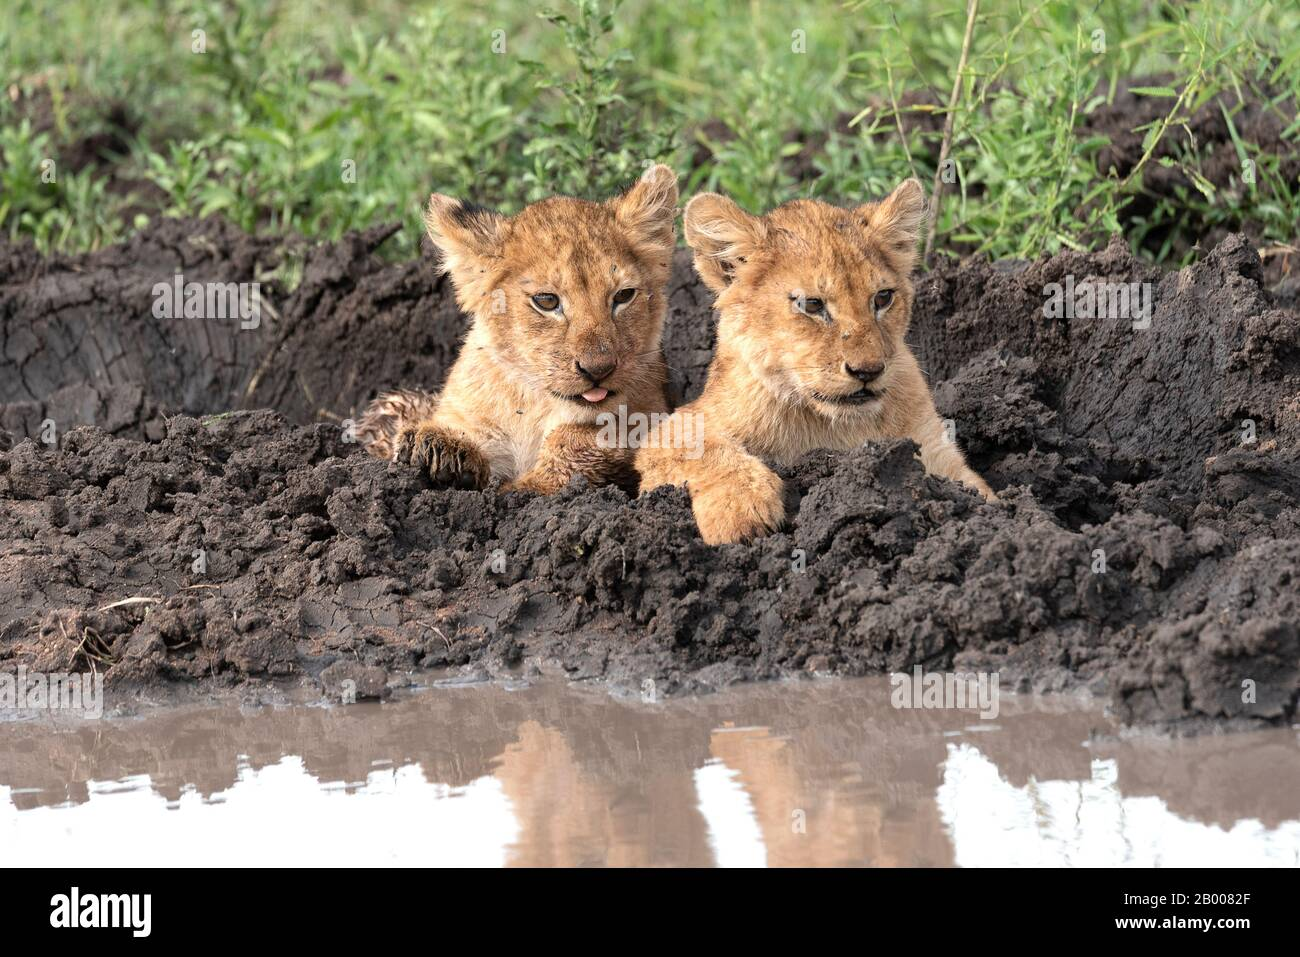 Adorable Lion cubs with his tongue poking out Stock Photo